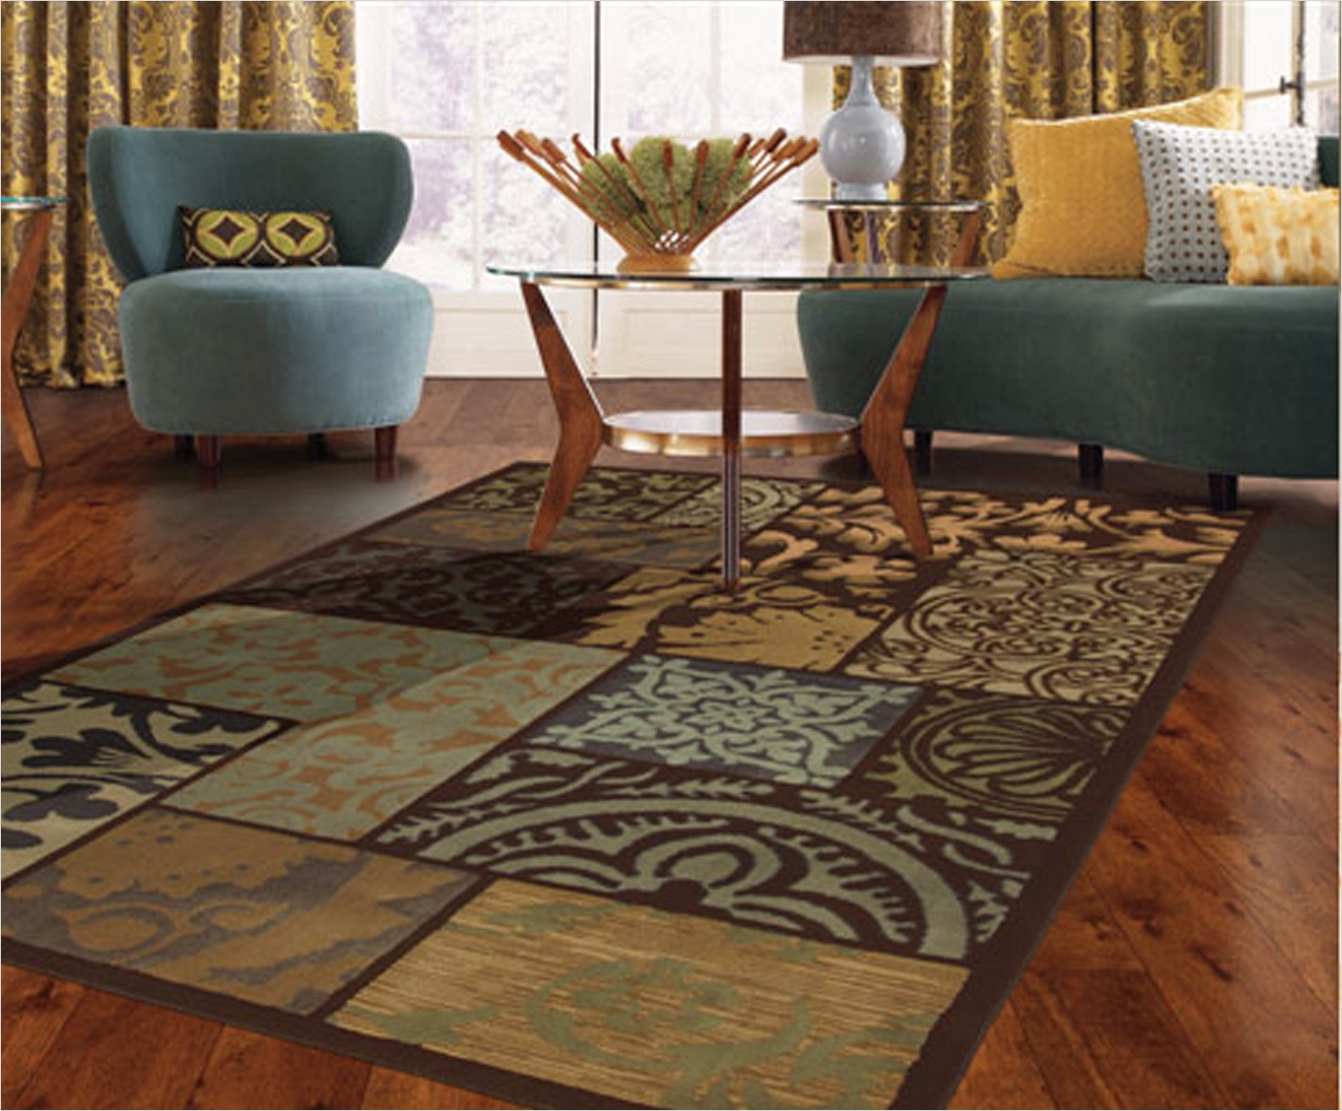 The living room is one of the most important areas in your house for a great hosting experience. beautiful living room area rugs 5 - DecoRelated